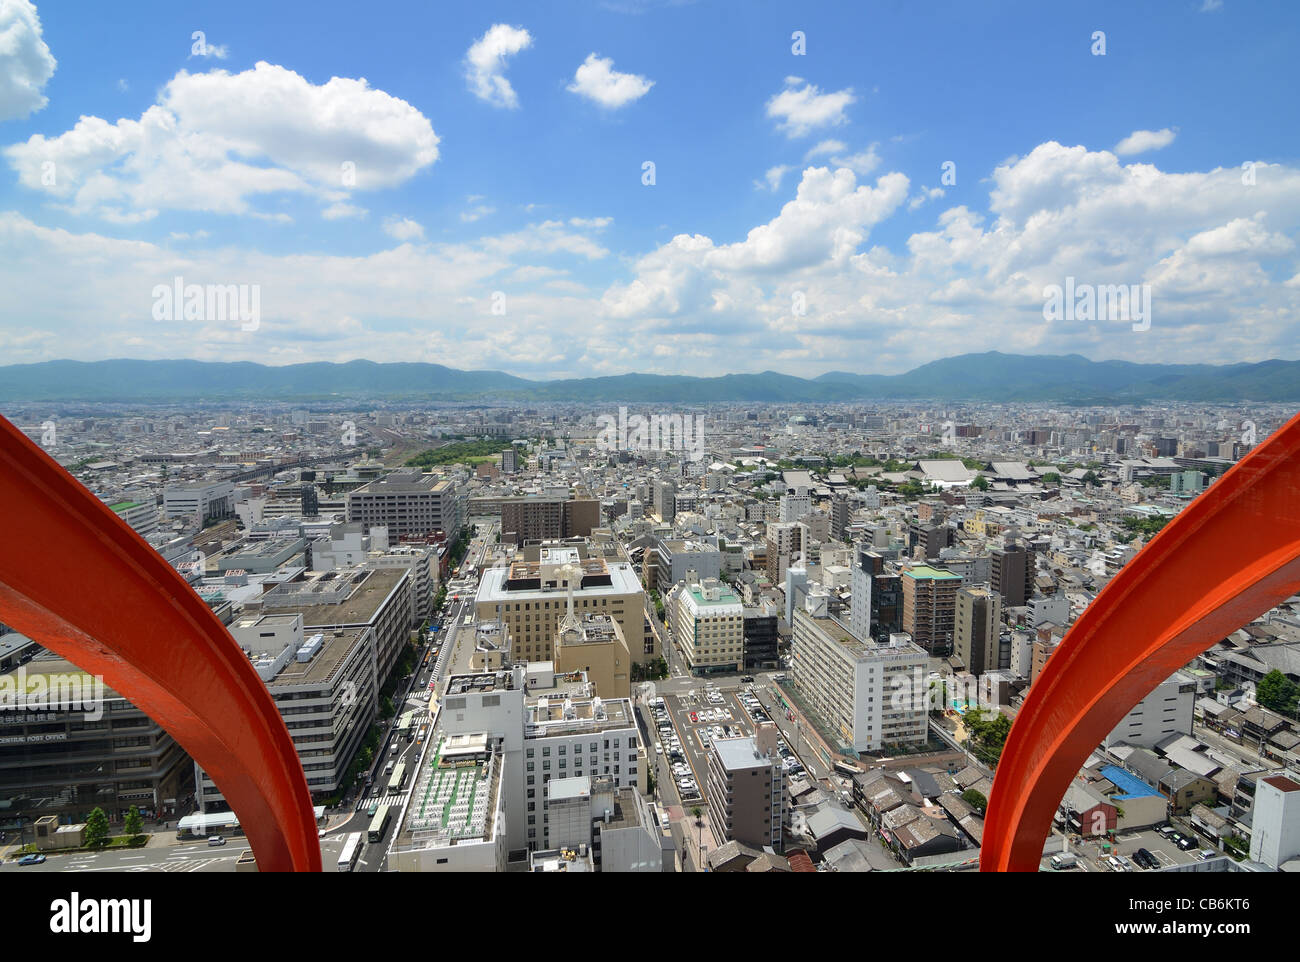 Aerial view of Kyoto, Japan. Stock Photo